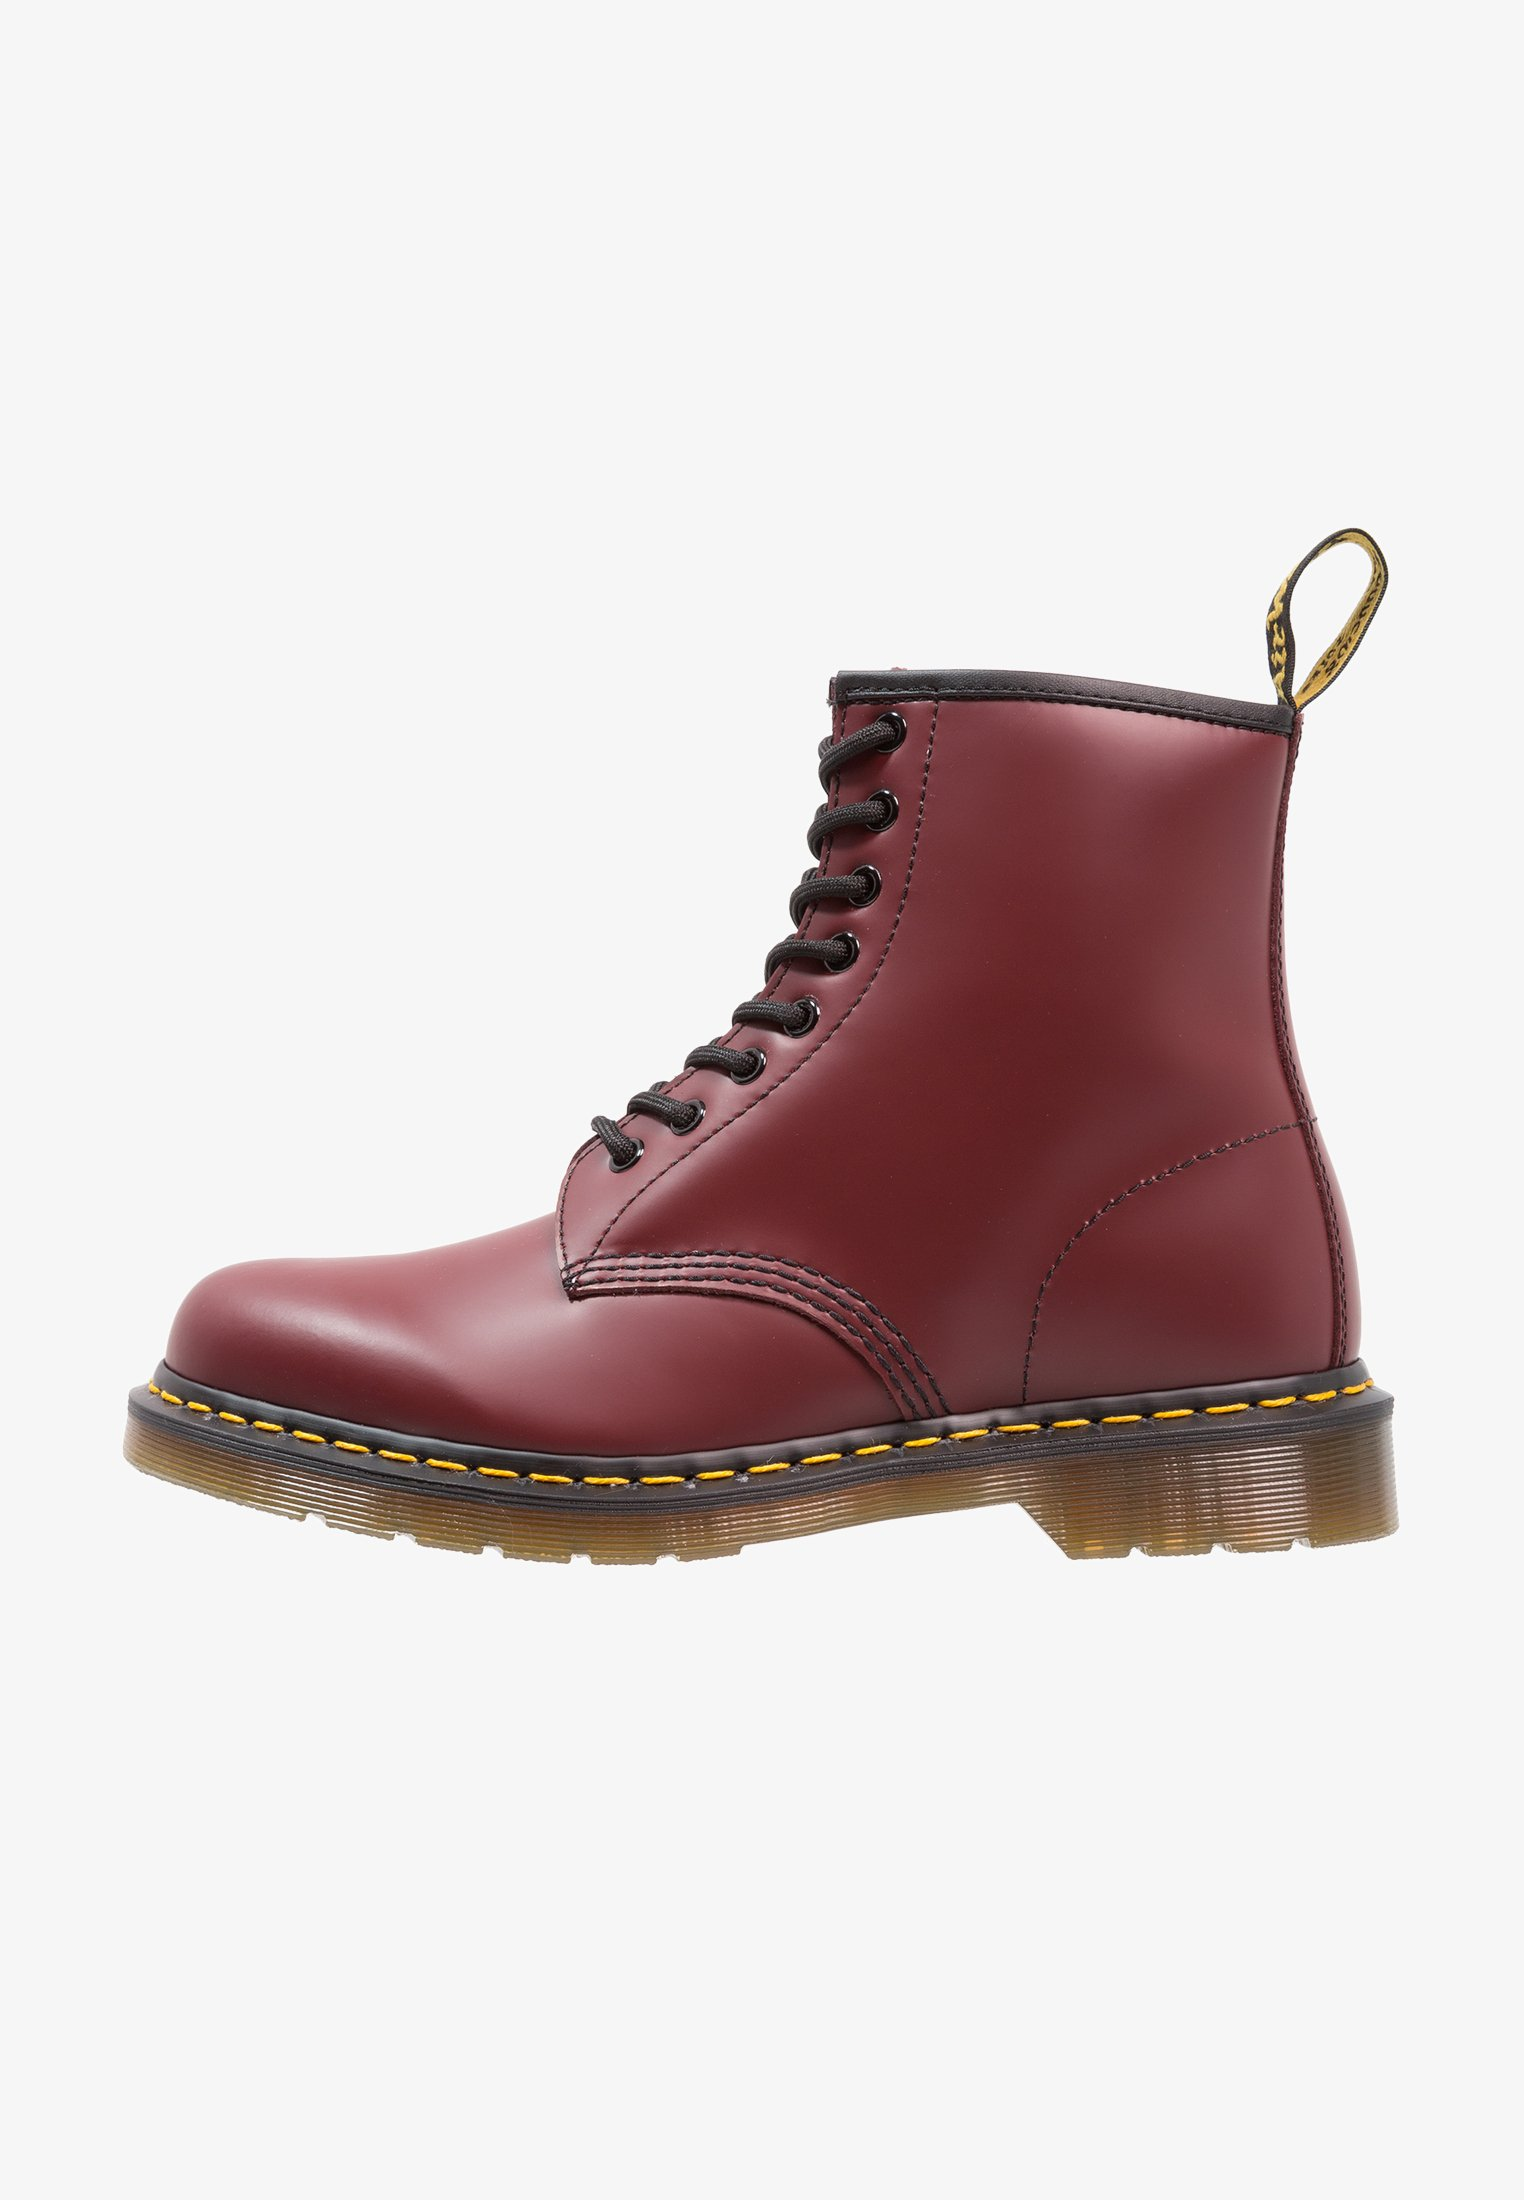 Dr. Martens - Stivaletti stringati - cherry red rouge